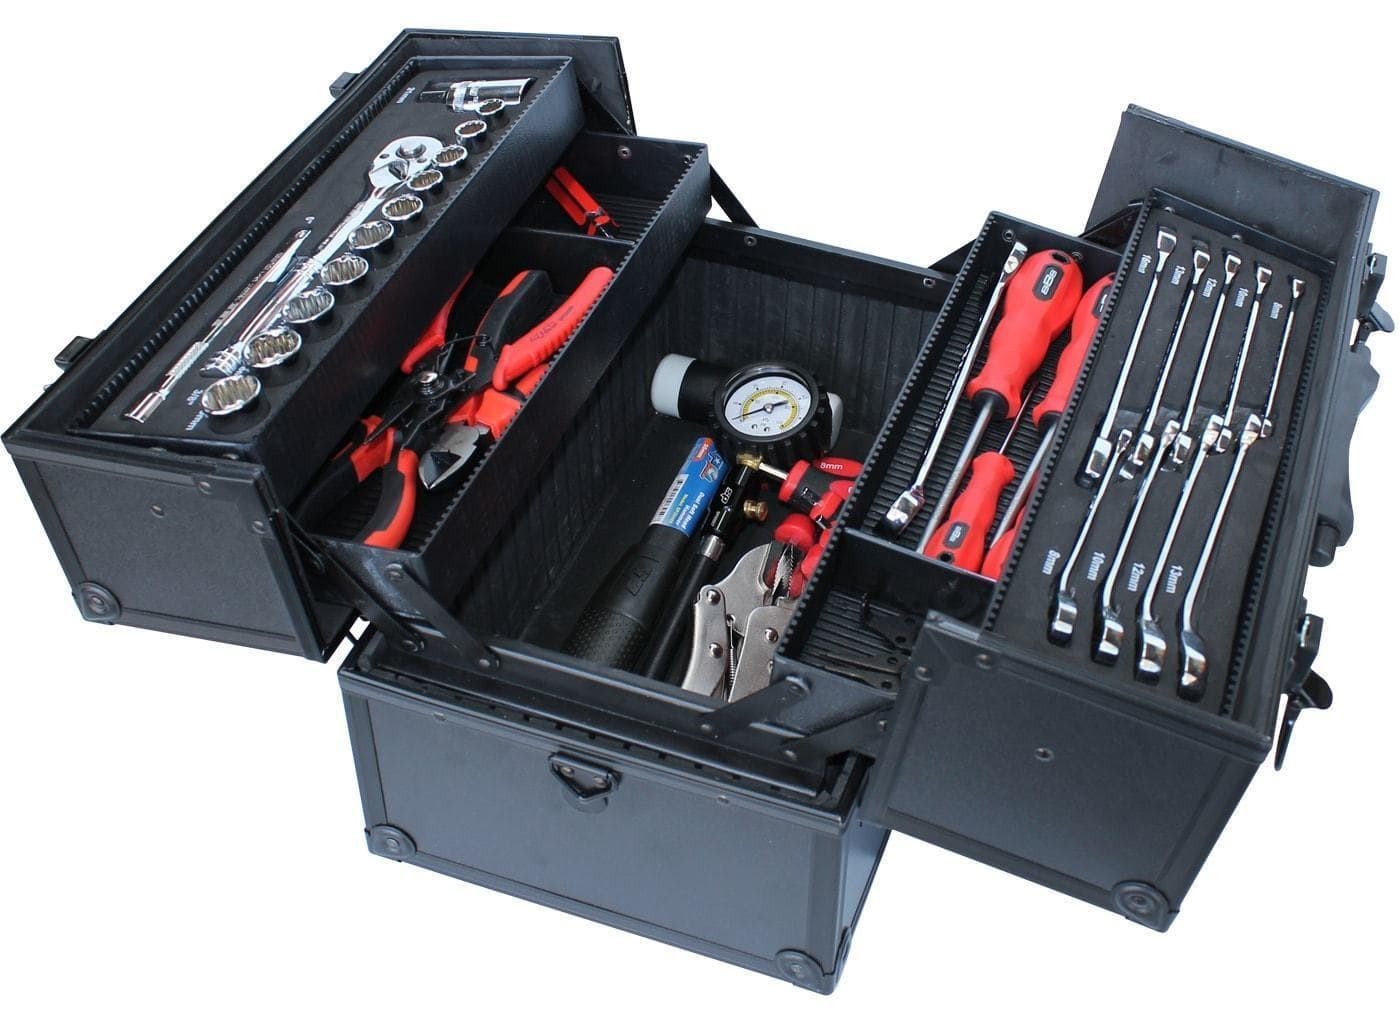 karting-tool-kit-general-kart-maintenance